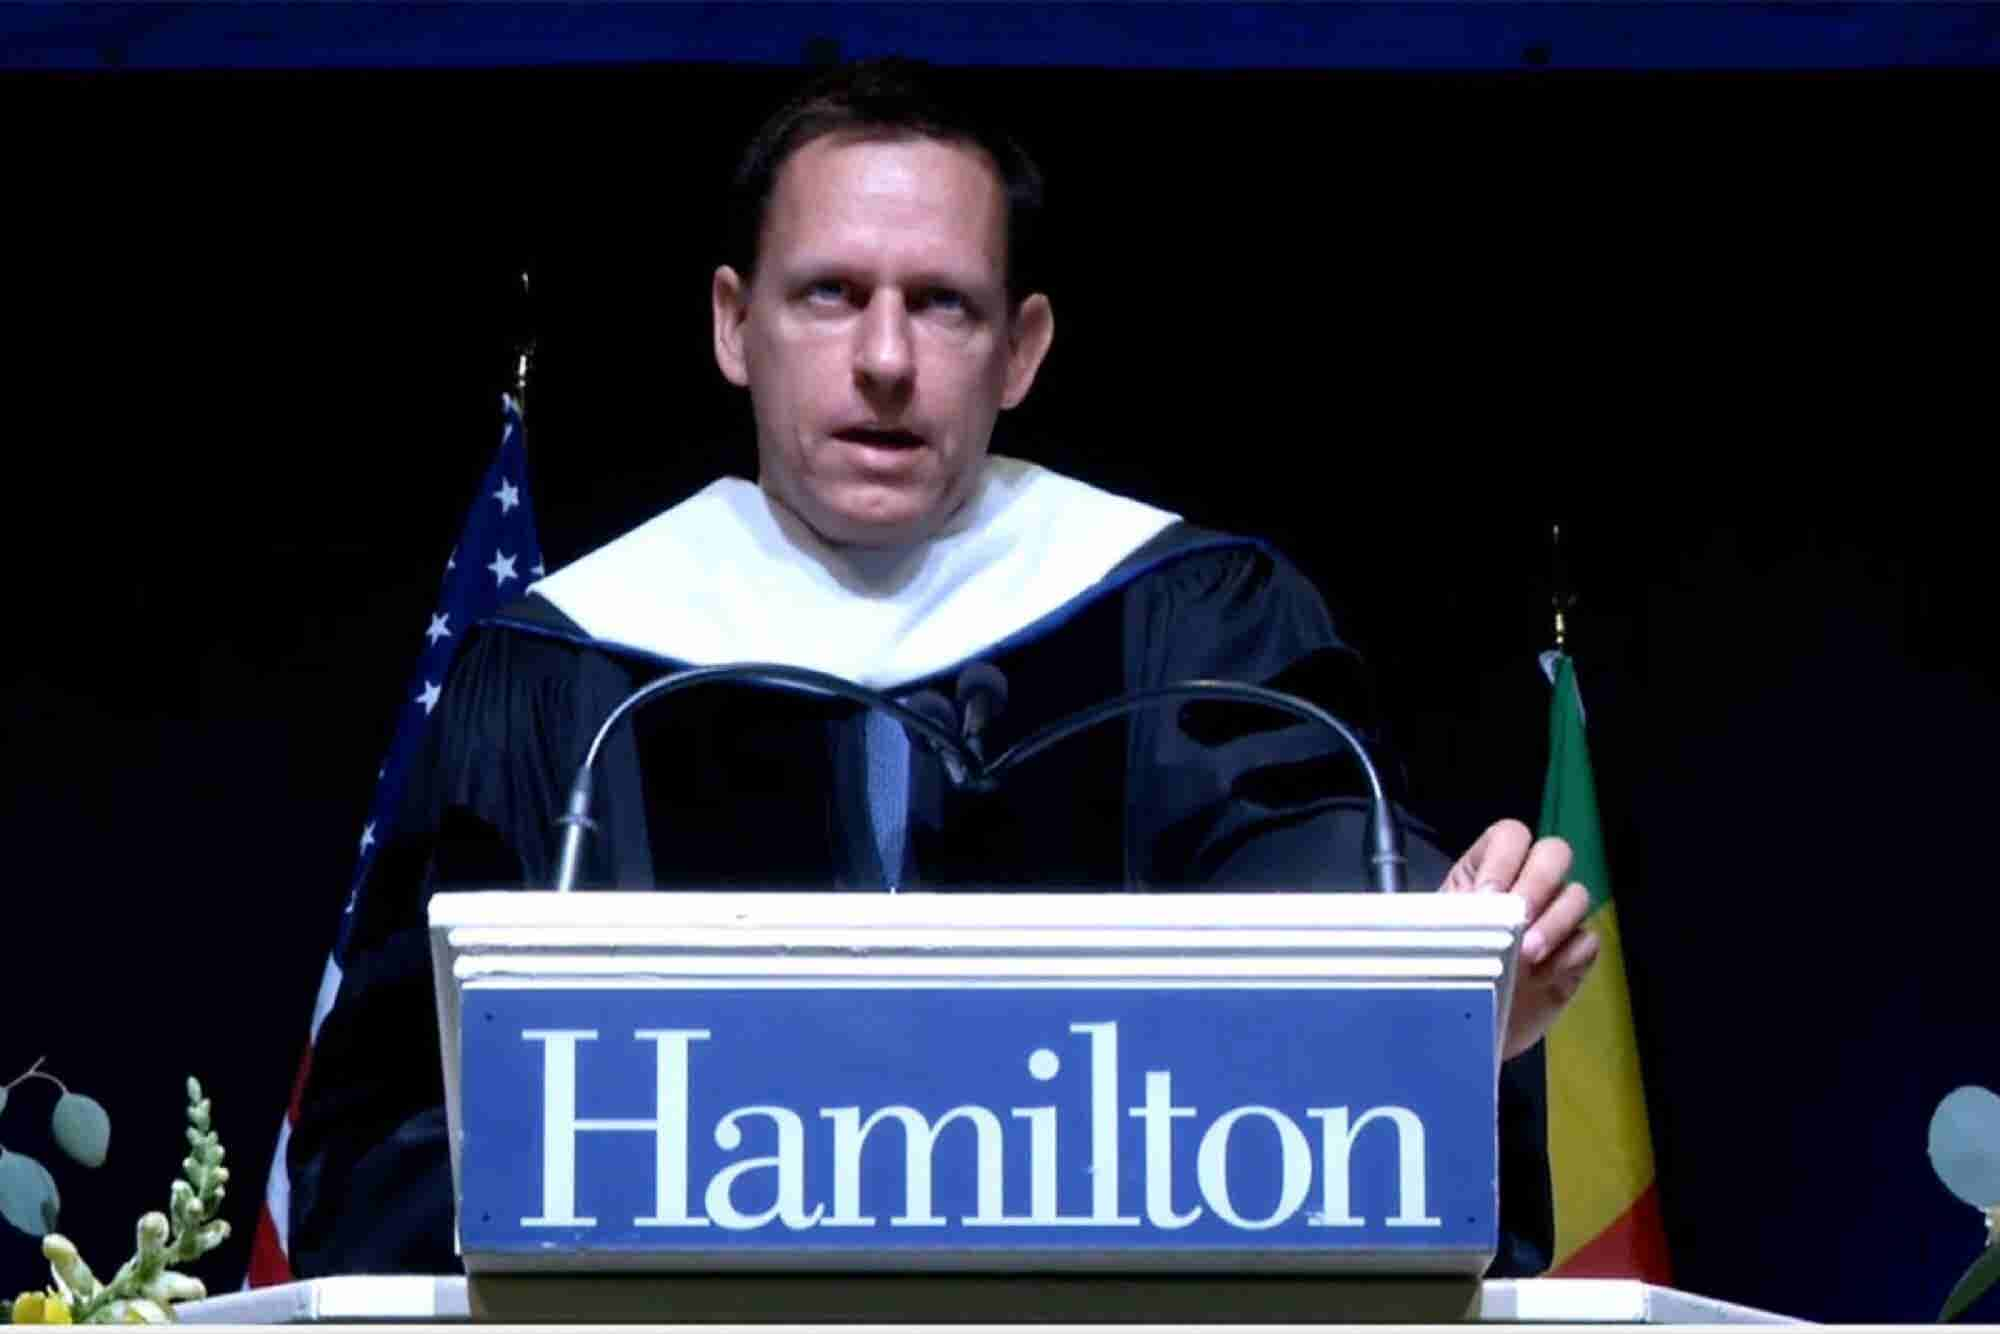 Peter Thiel Commencement Speech, Hamilton College, May 2016 (Transcript)